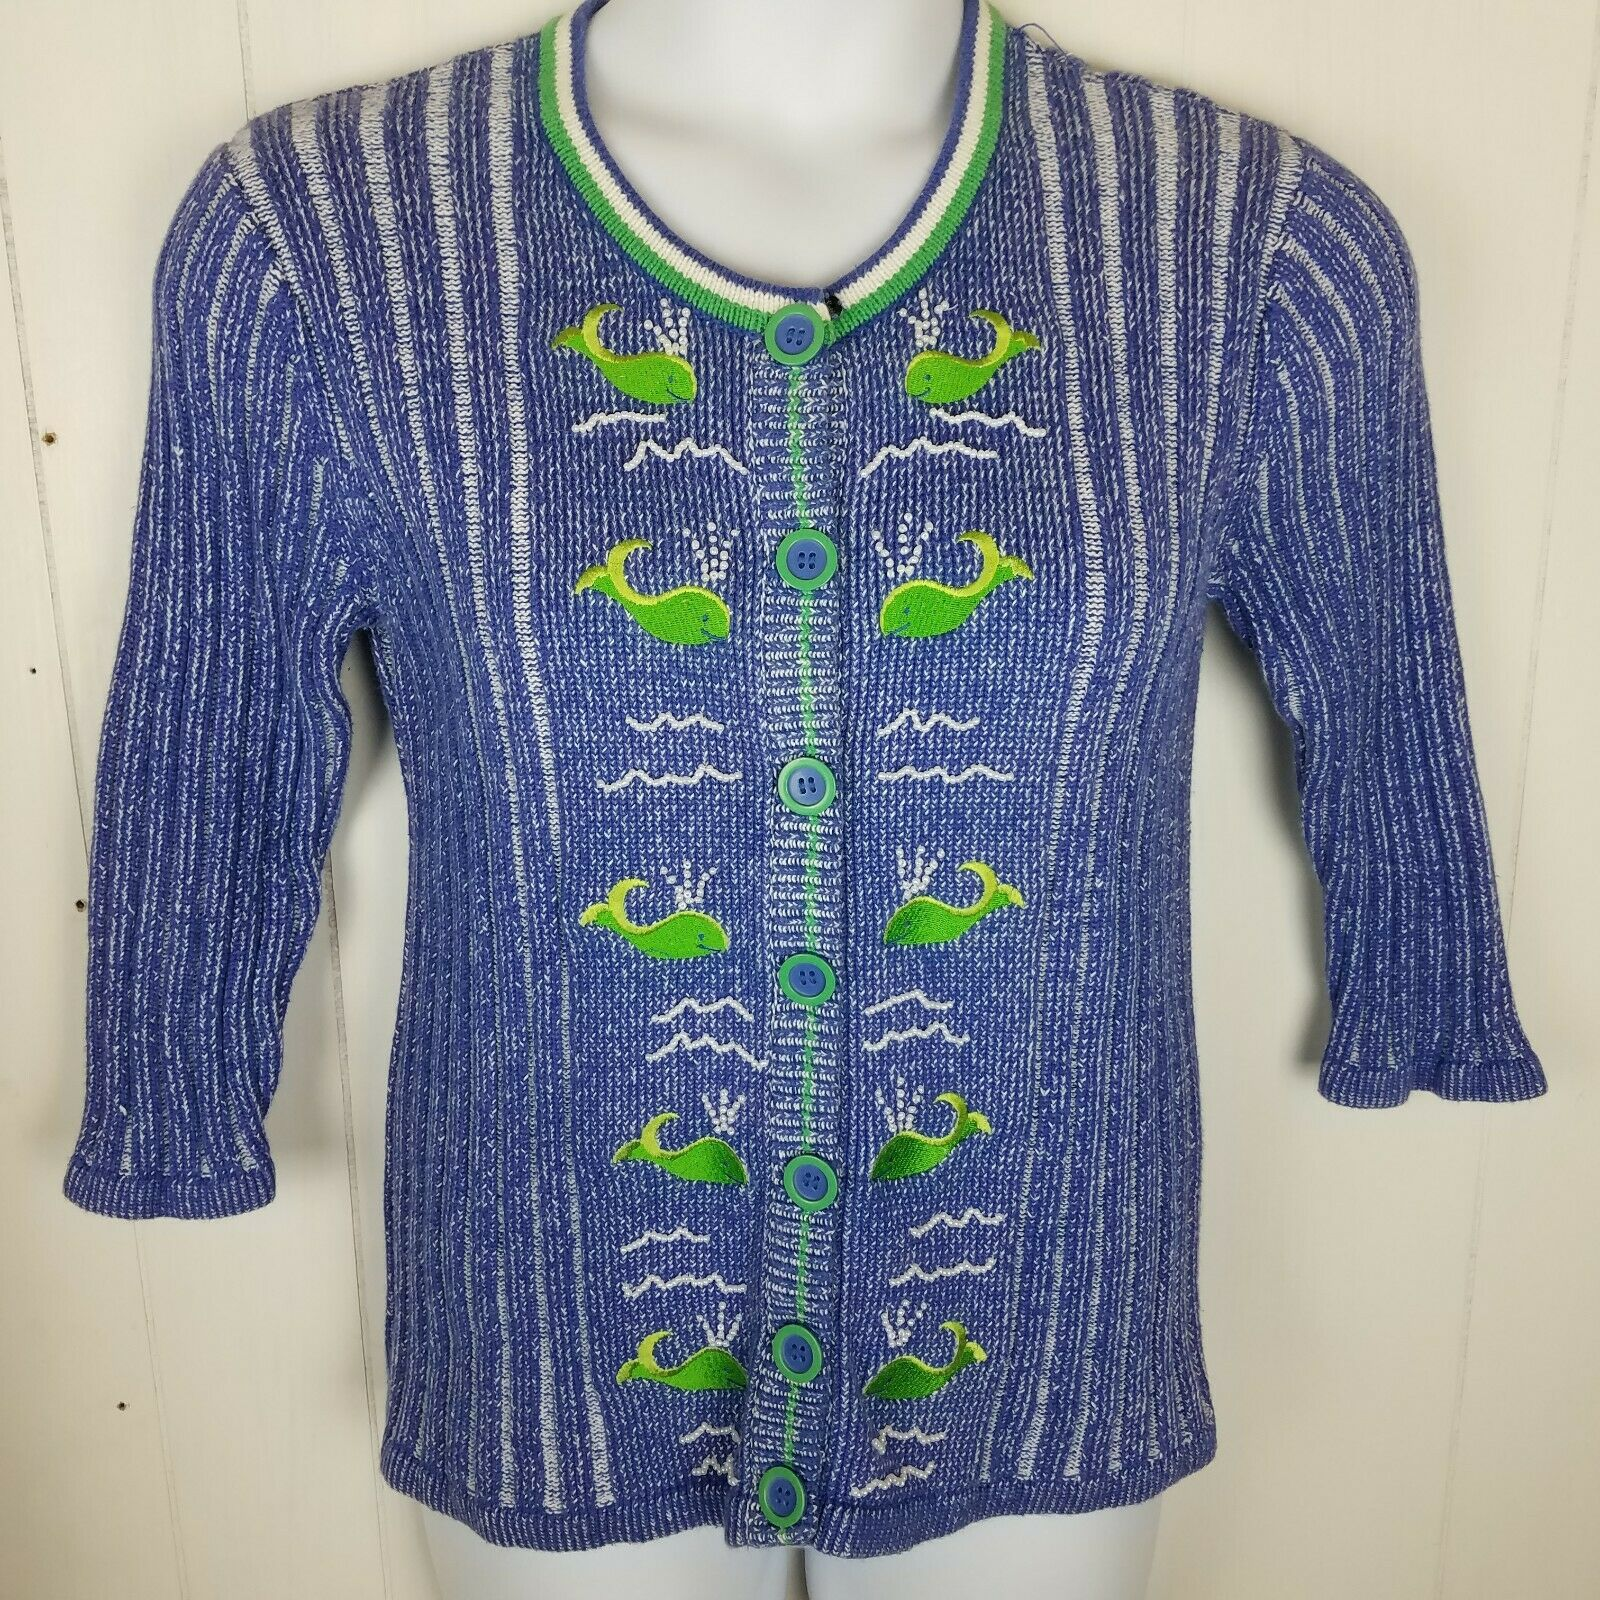 Storybook Knits Sweater Size S Whale of a Day bluee Green Beaded Cardigan